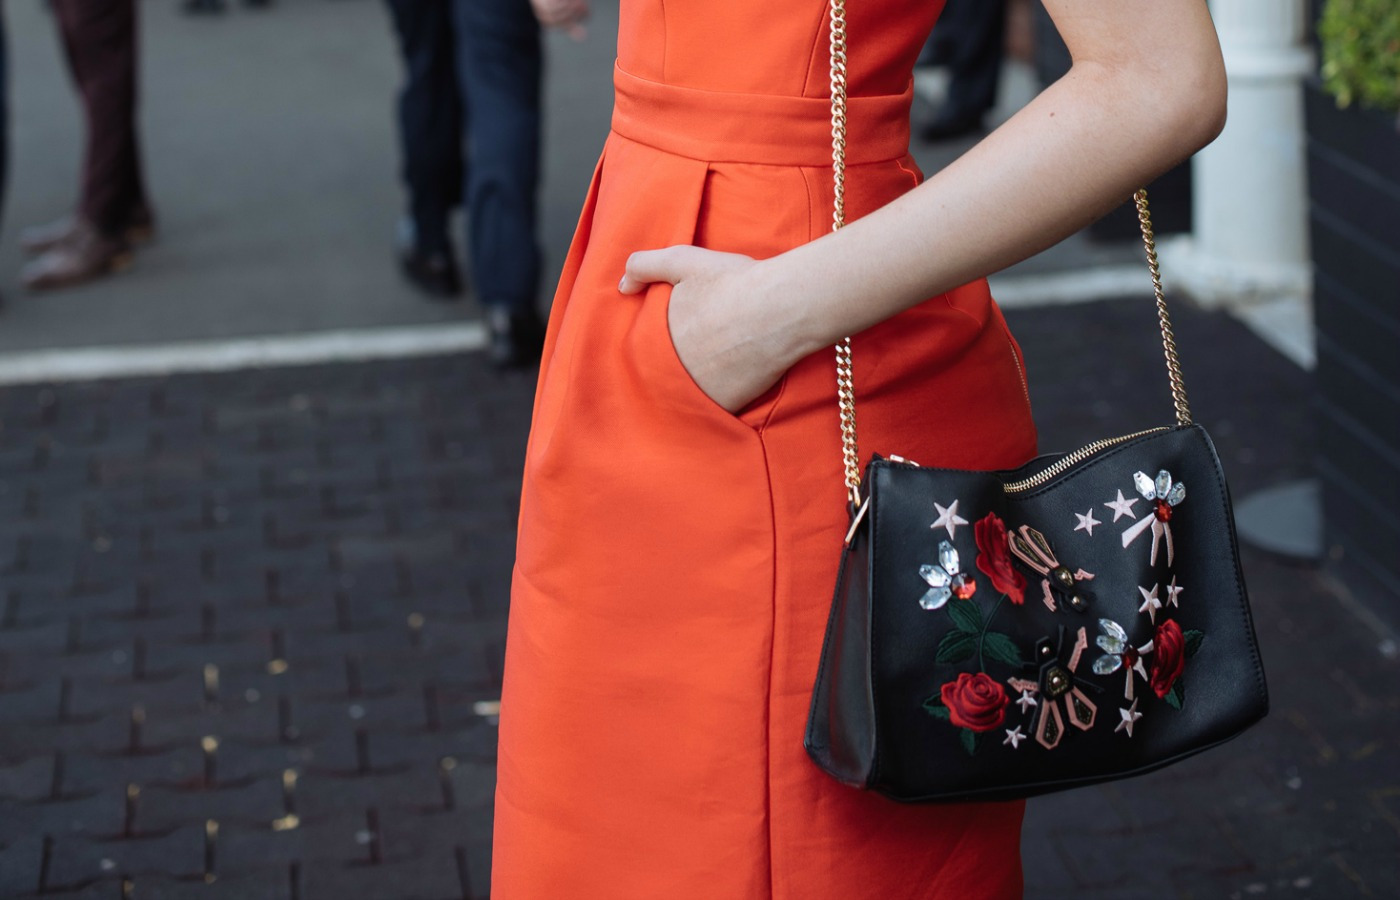 clutch bag streetstyle fashion at royal randwick racecourse.